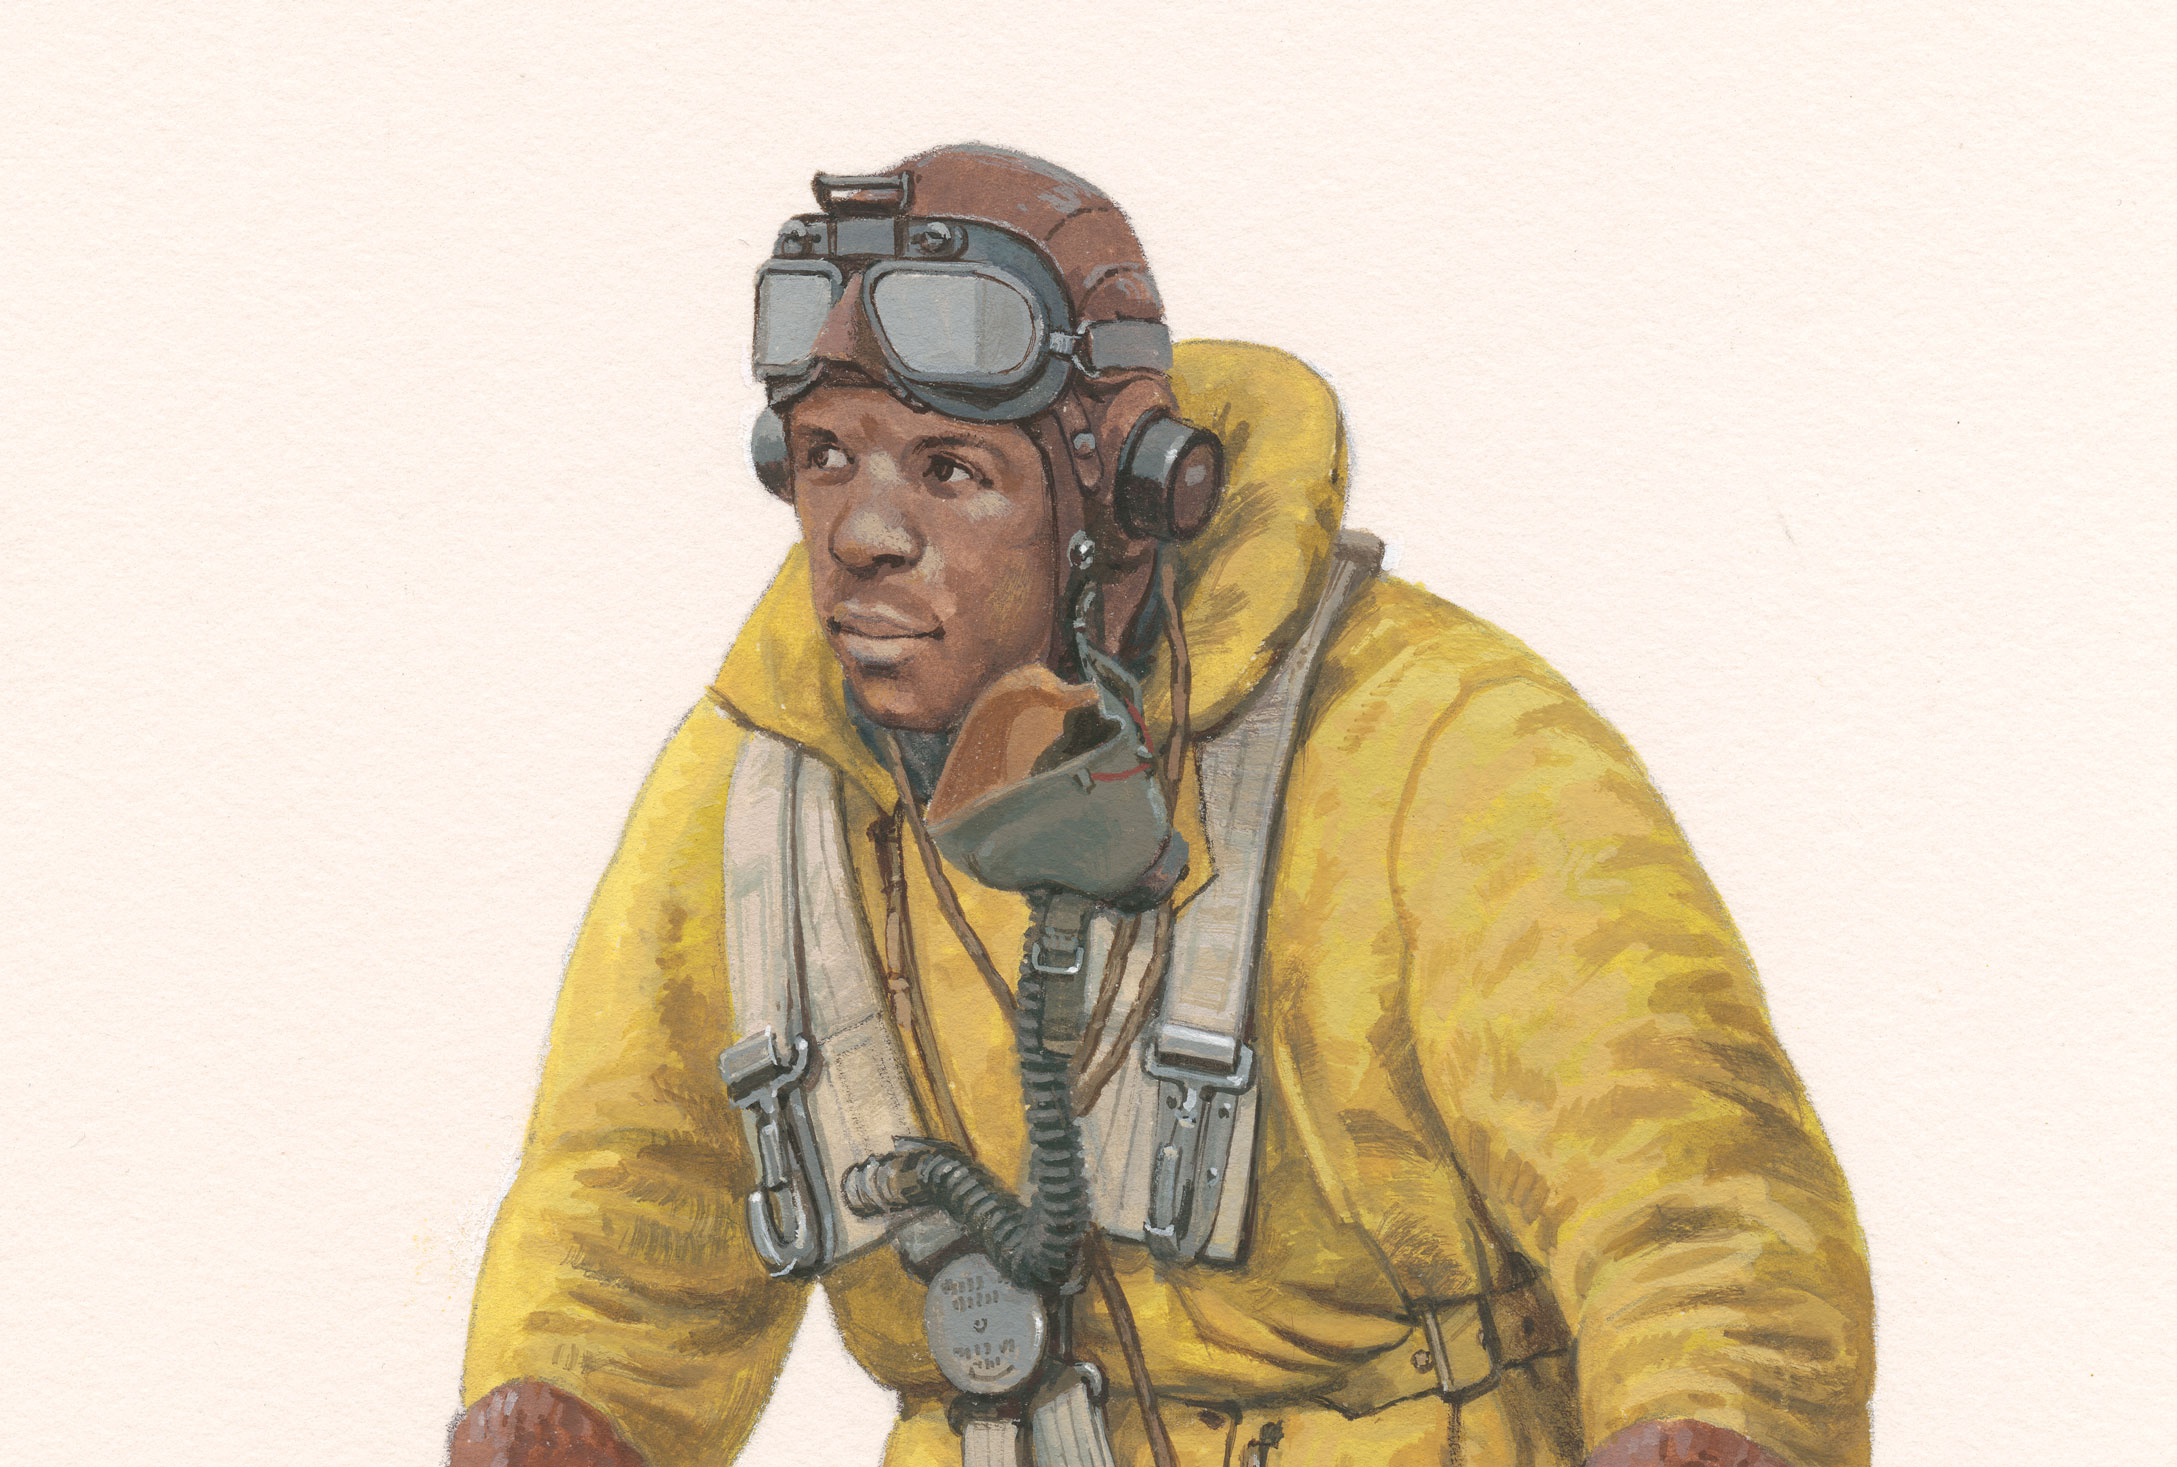 A painting of the head and shoulders of a black Lancaster Air Gunner with hat and goggles.